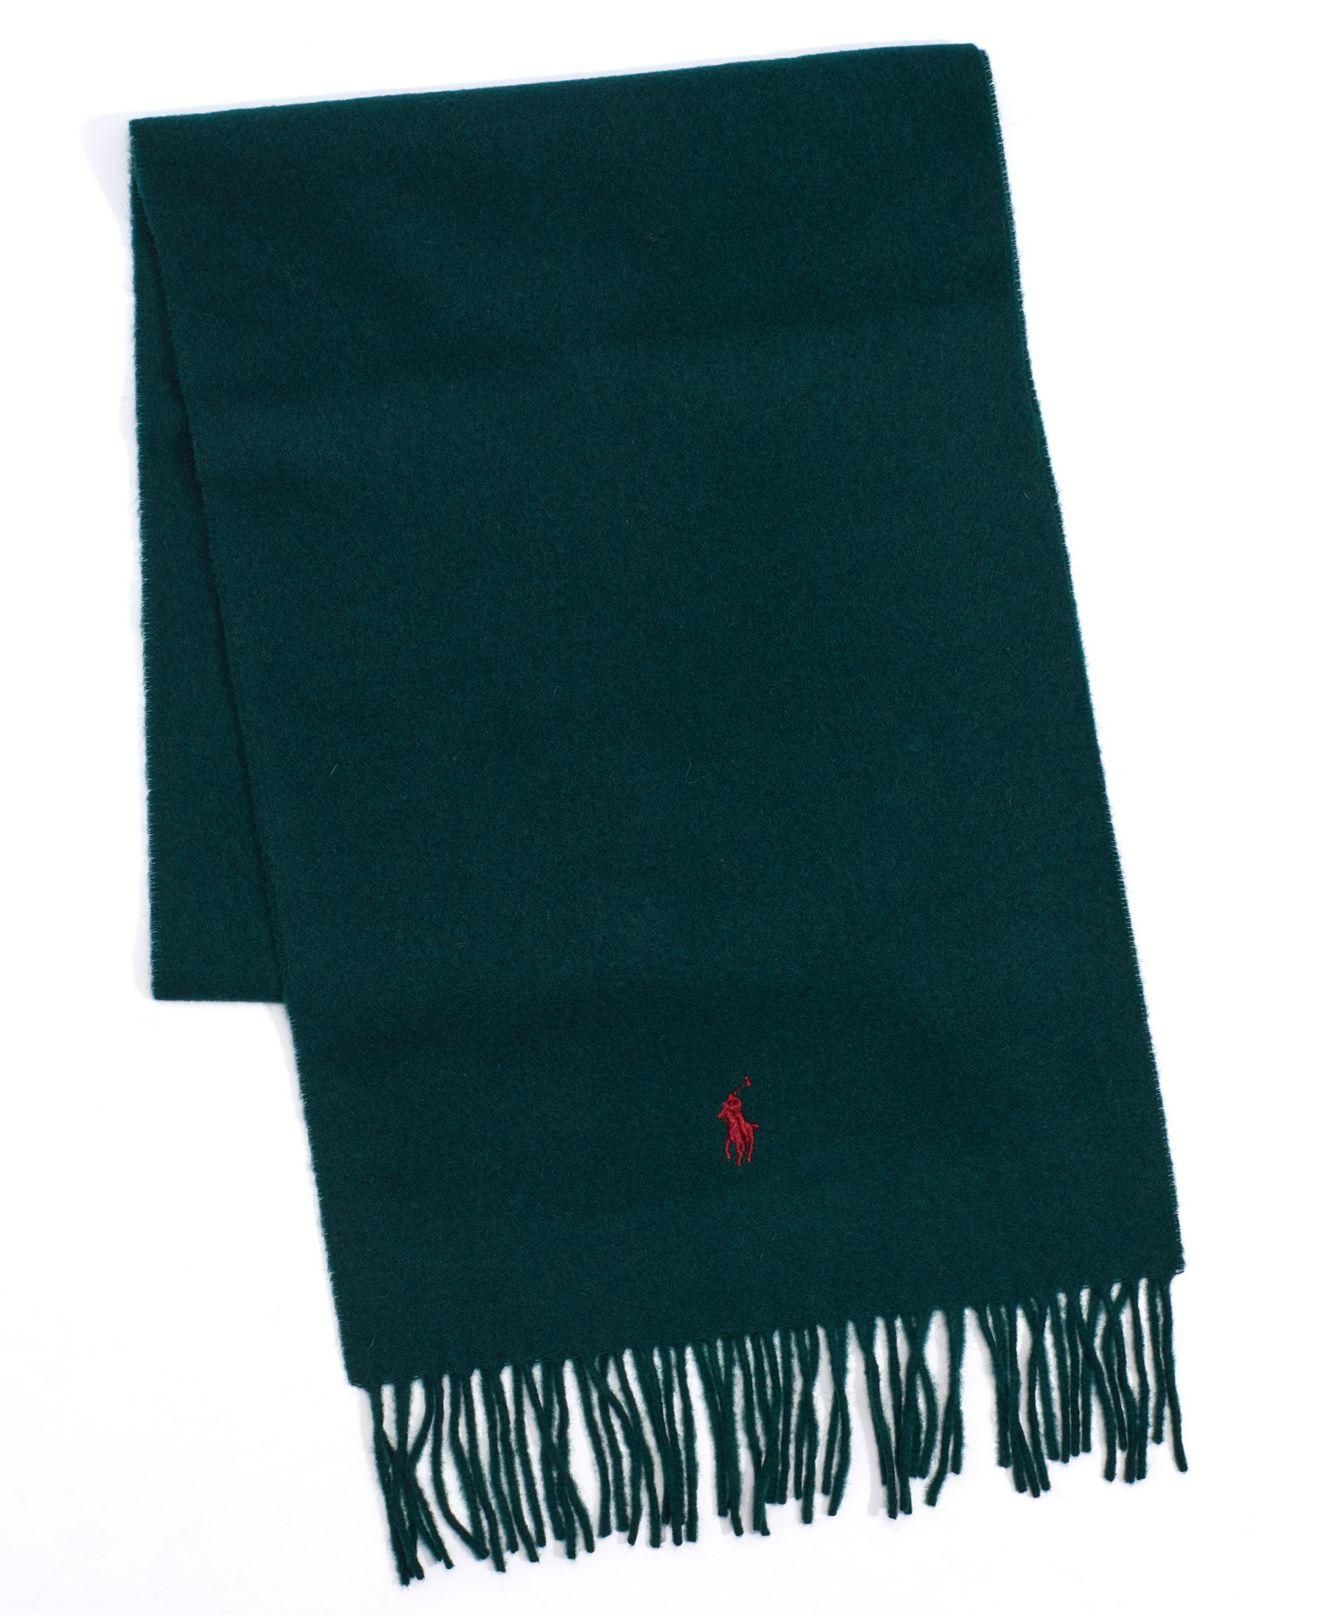 Polo Ralph Lauren Solid Wool Muffler With Fringe Trim In Green For Men Lyst